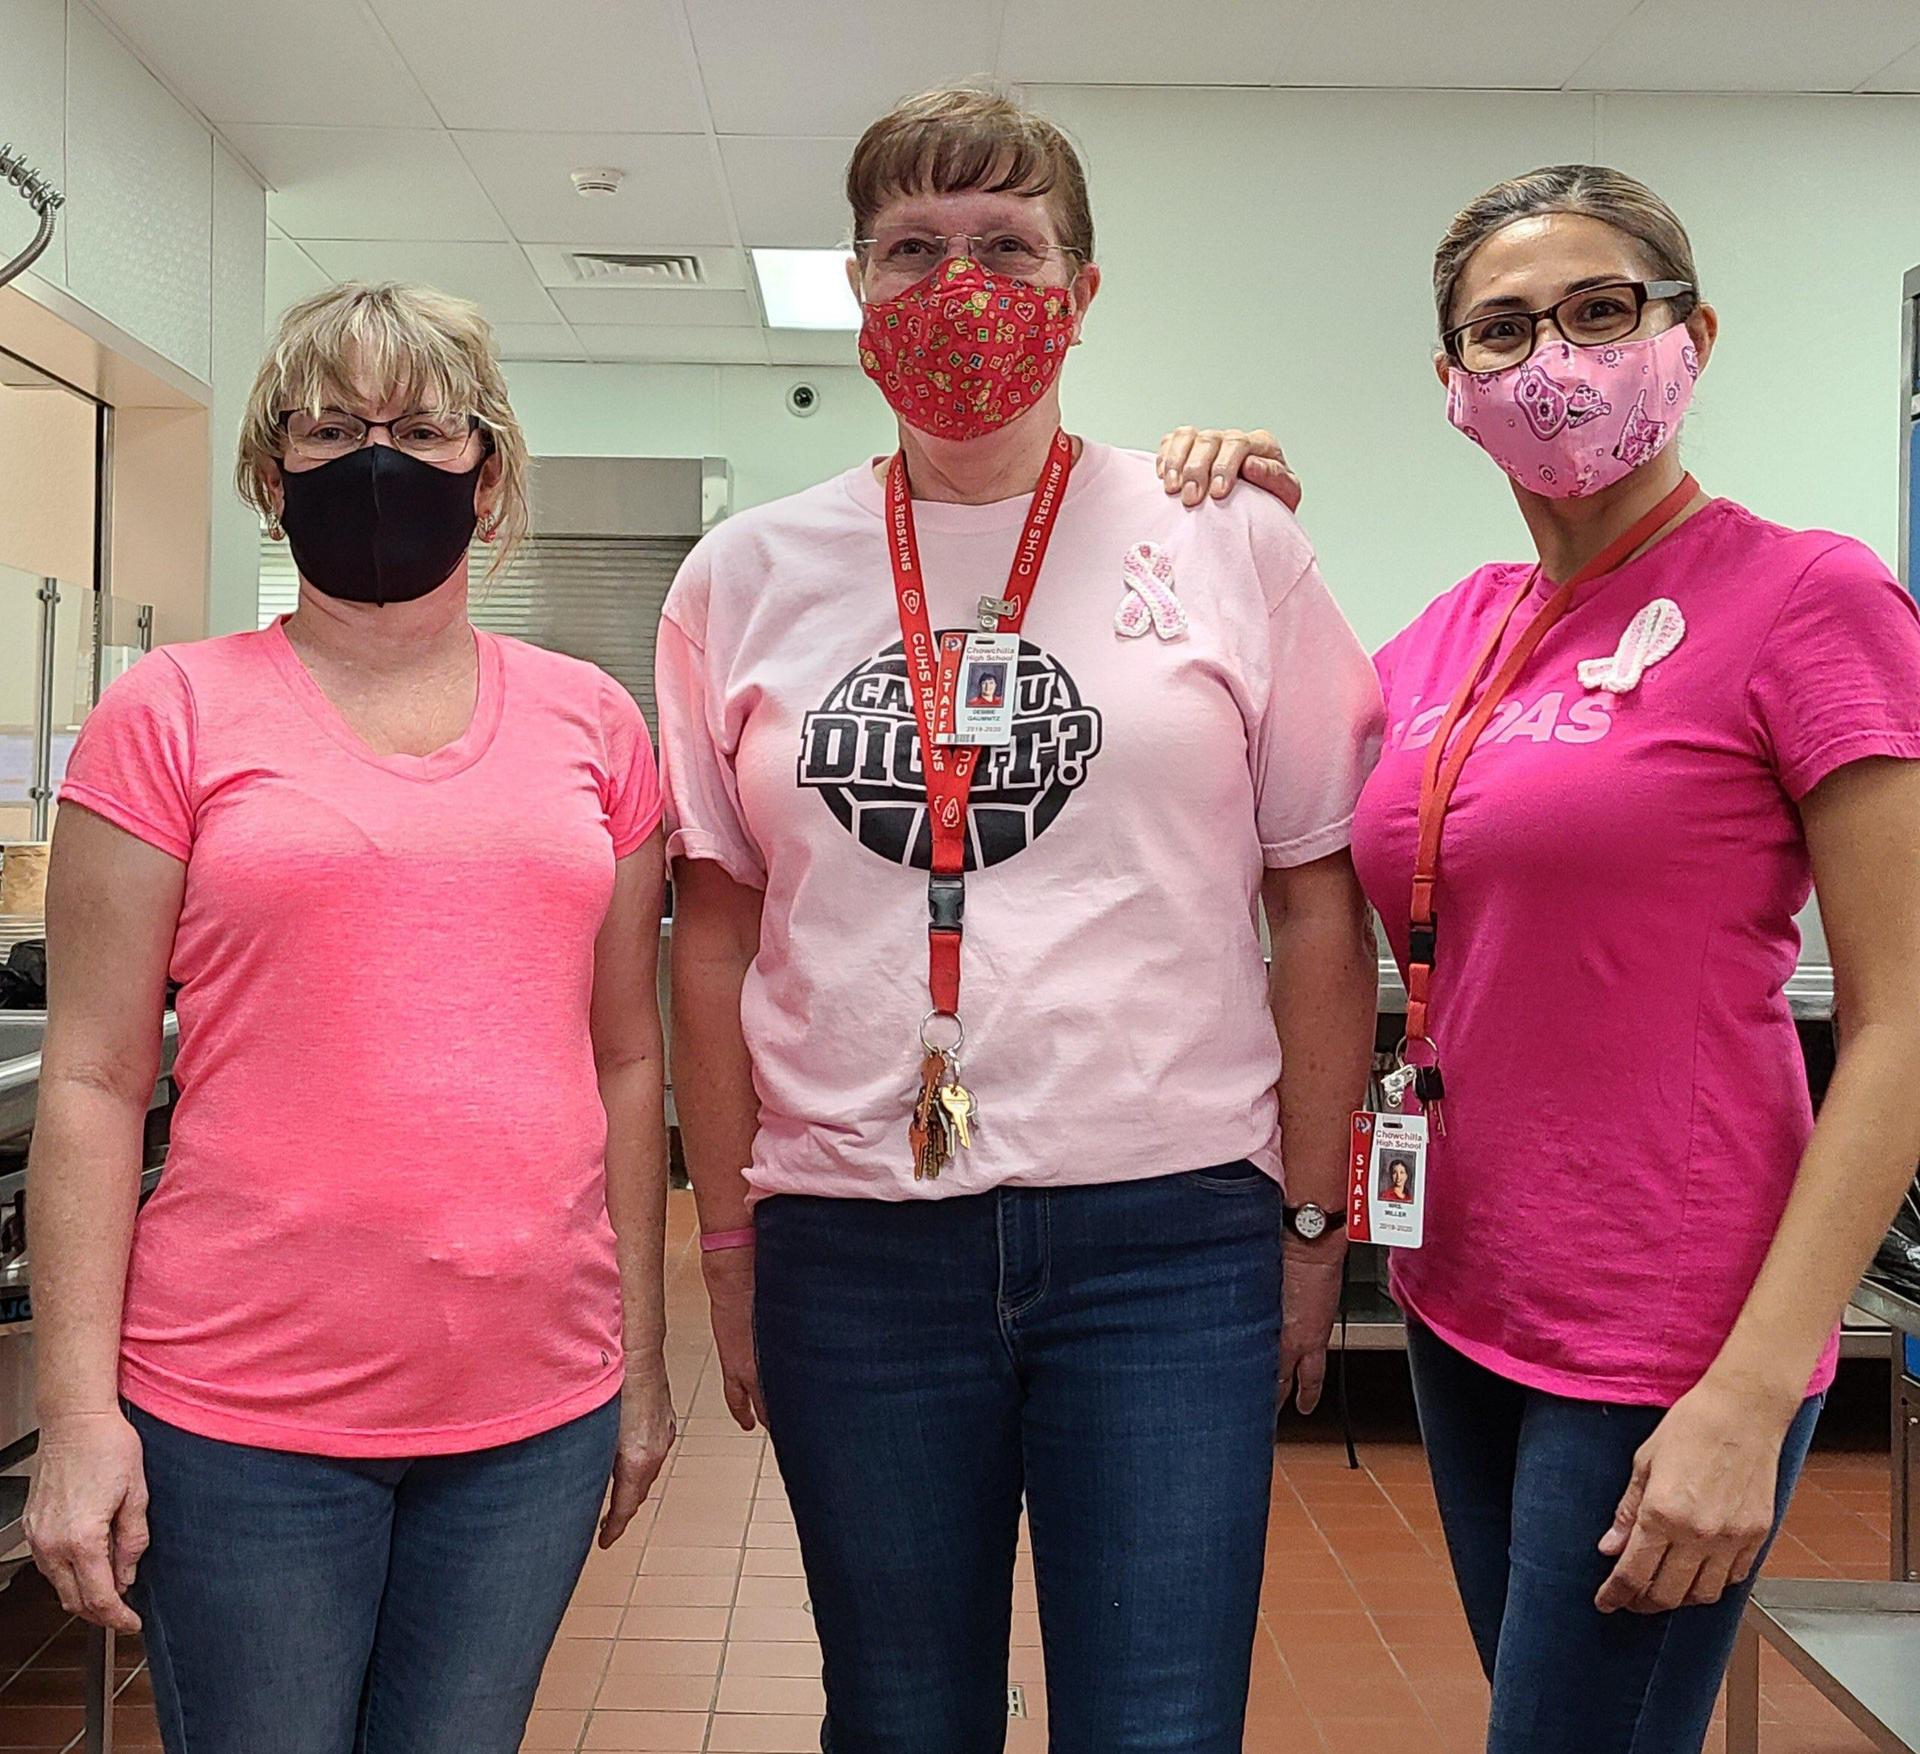 cafeteria staff wearing pink